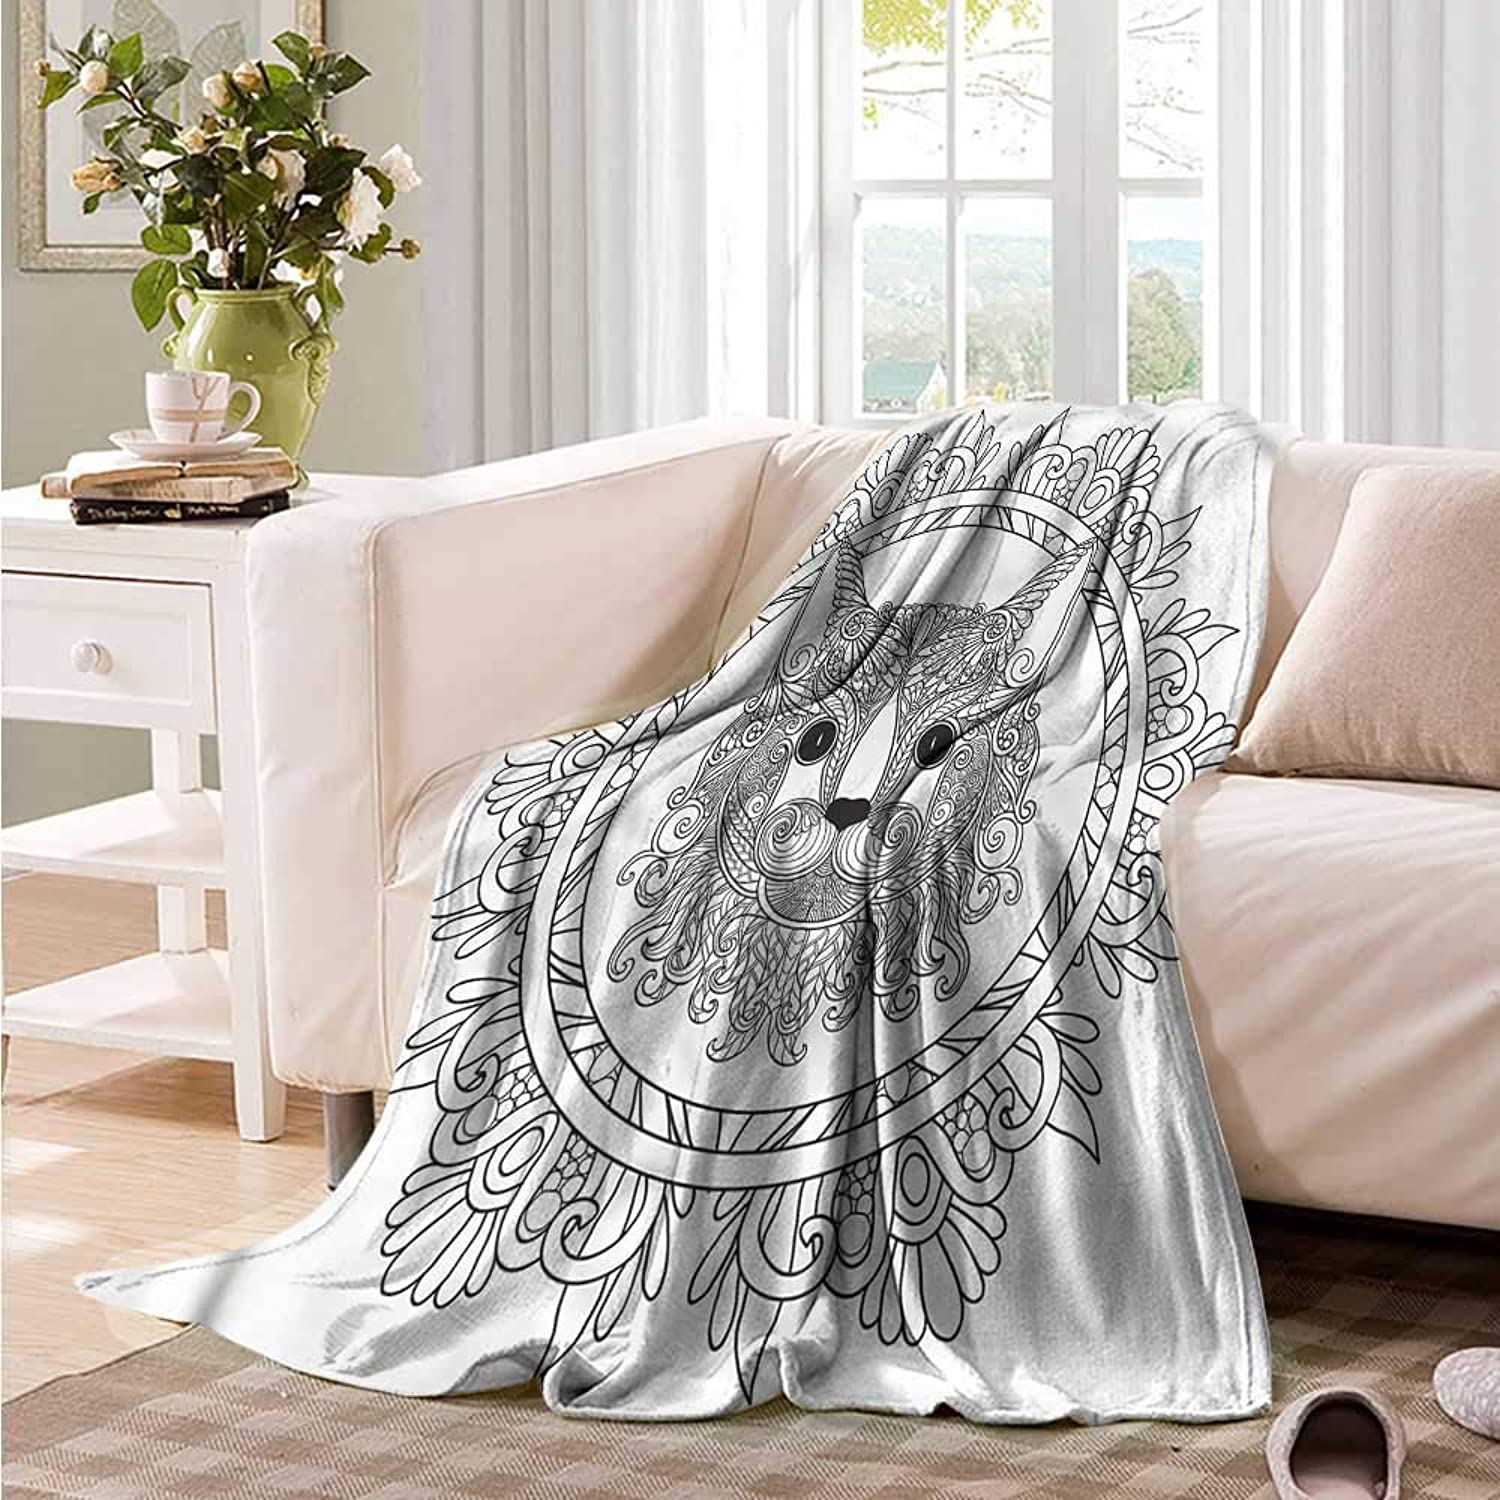 Oncegod Beds Blanket Mandala Cat Figure Cosmos Ornament Camping Throw,Office wrap 60  W x 51  L